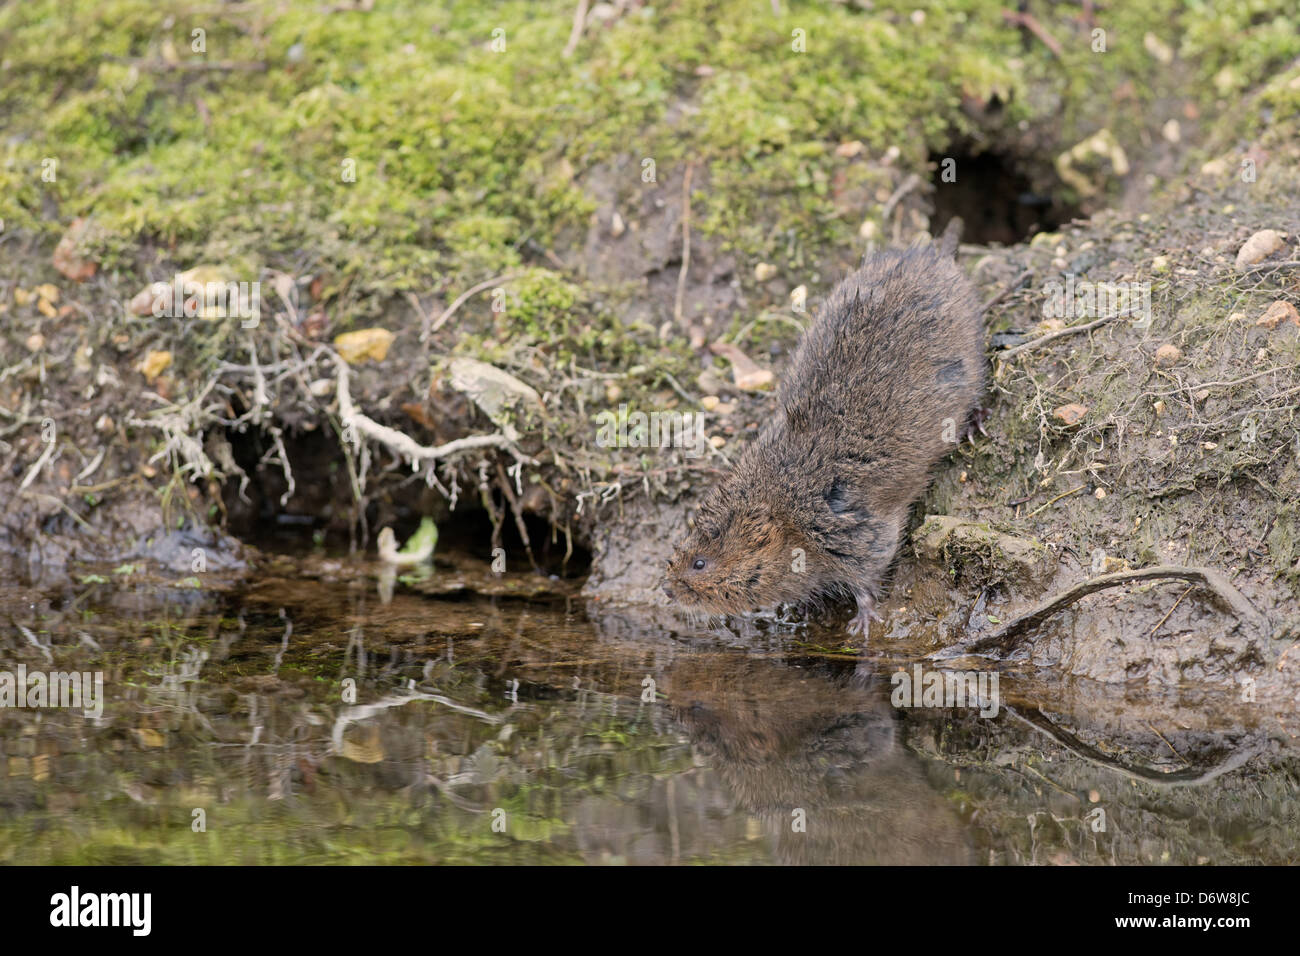 Water Vole - Arvicola terrestris, Spring. UK - Stock Image